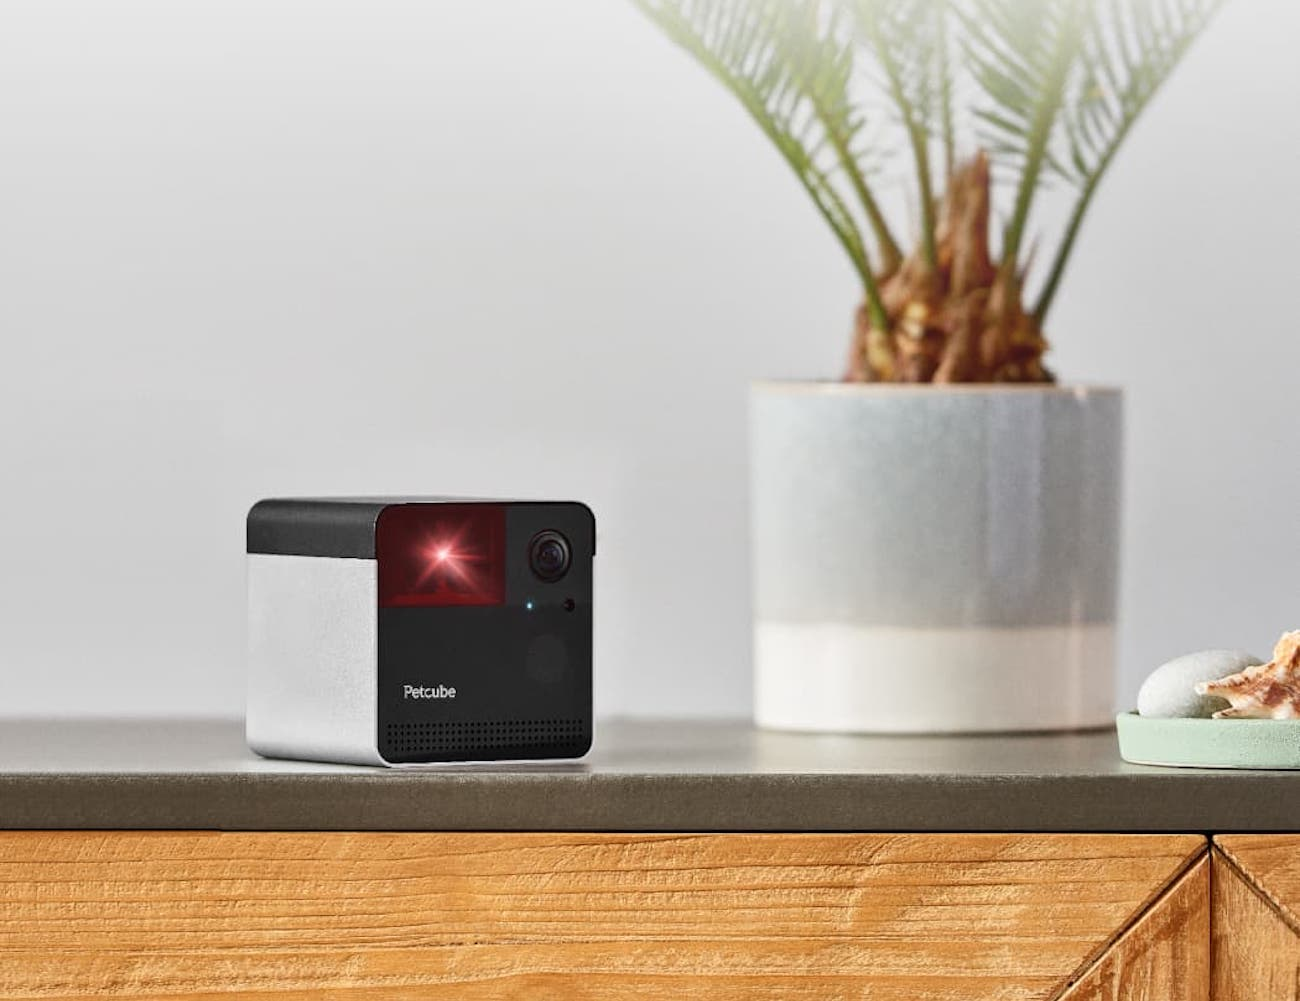 Petcube Play 2 Interactive Laser Pet Camera lets you play with your furry friend from anywhere